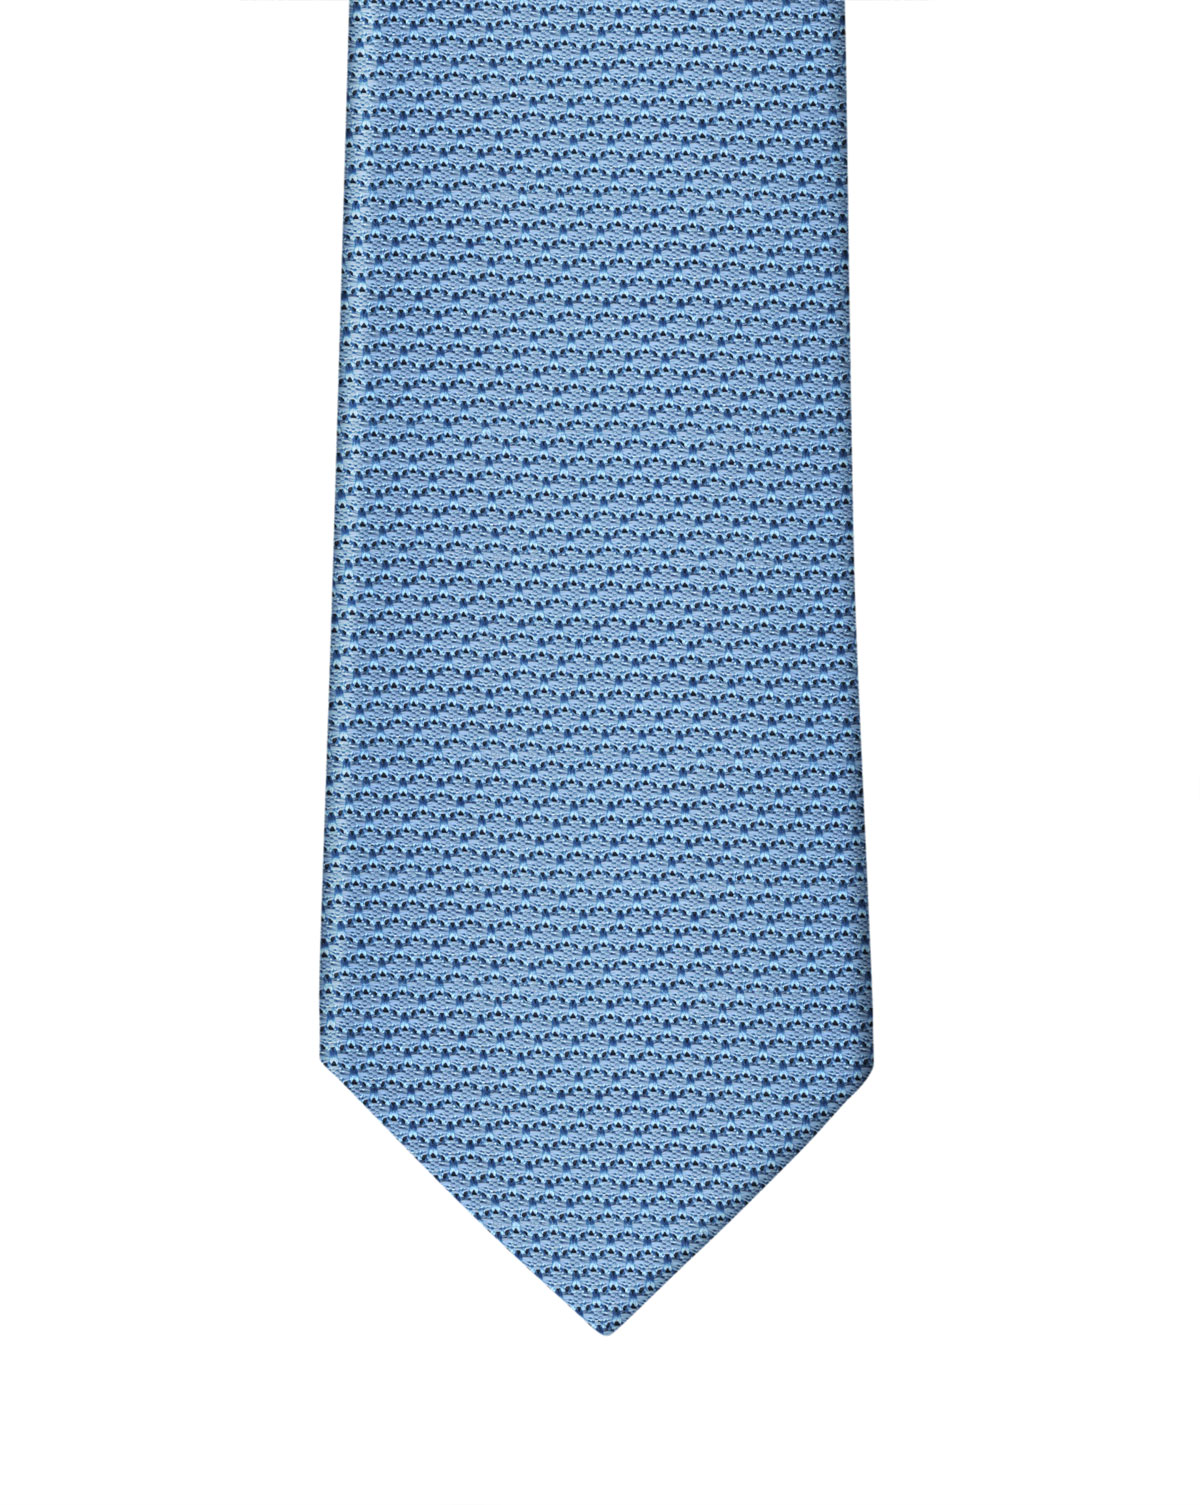 Cornflower Blue Grenadine Necktie